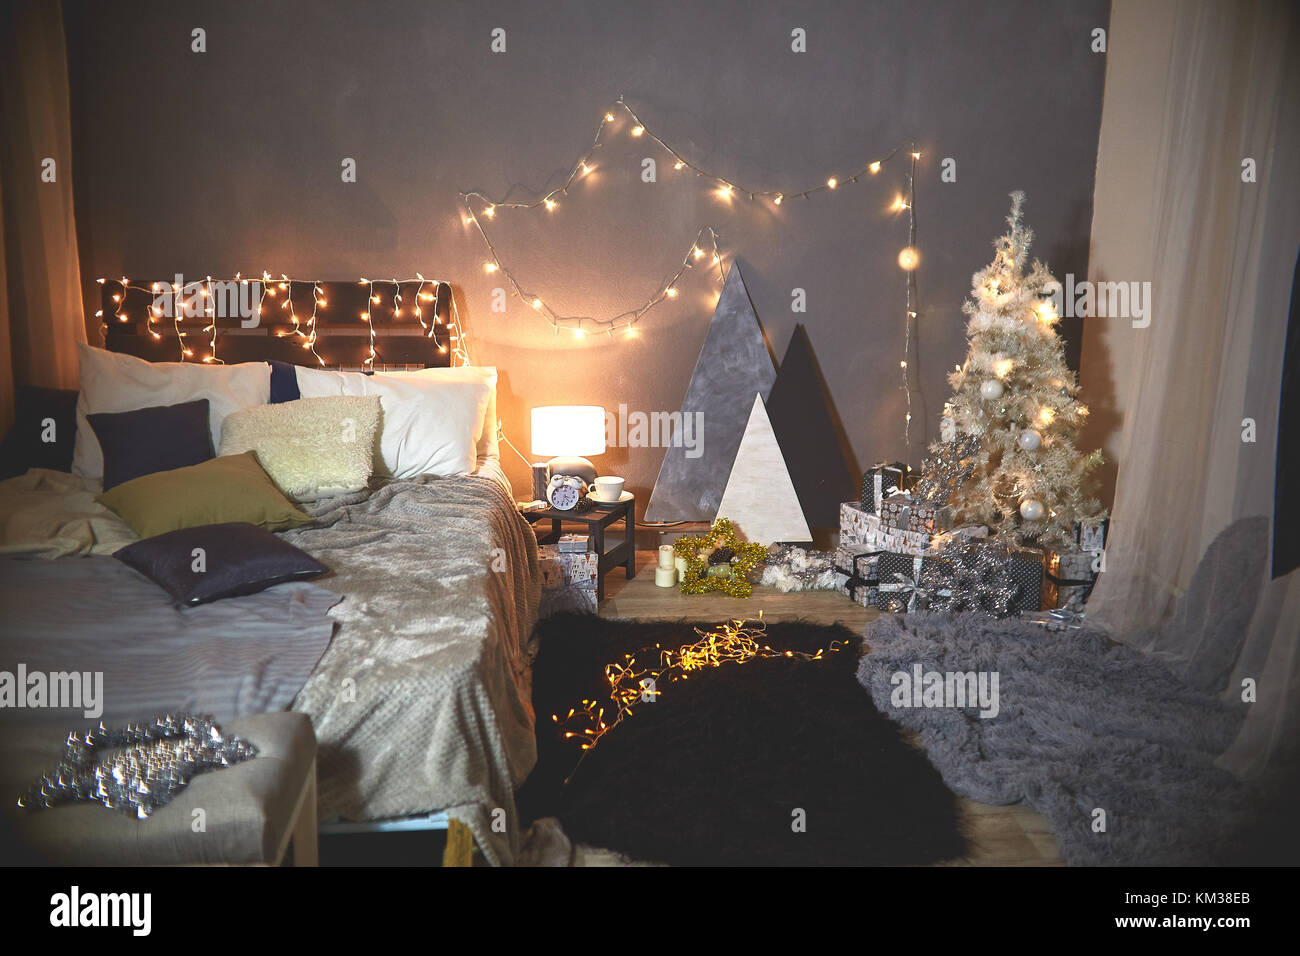 weihnachtsbaum in rosa shabby chic style an der wei en mauer hintergrund vintage und retro. Black Bedroom Furniture Sets. Home Design Ideas